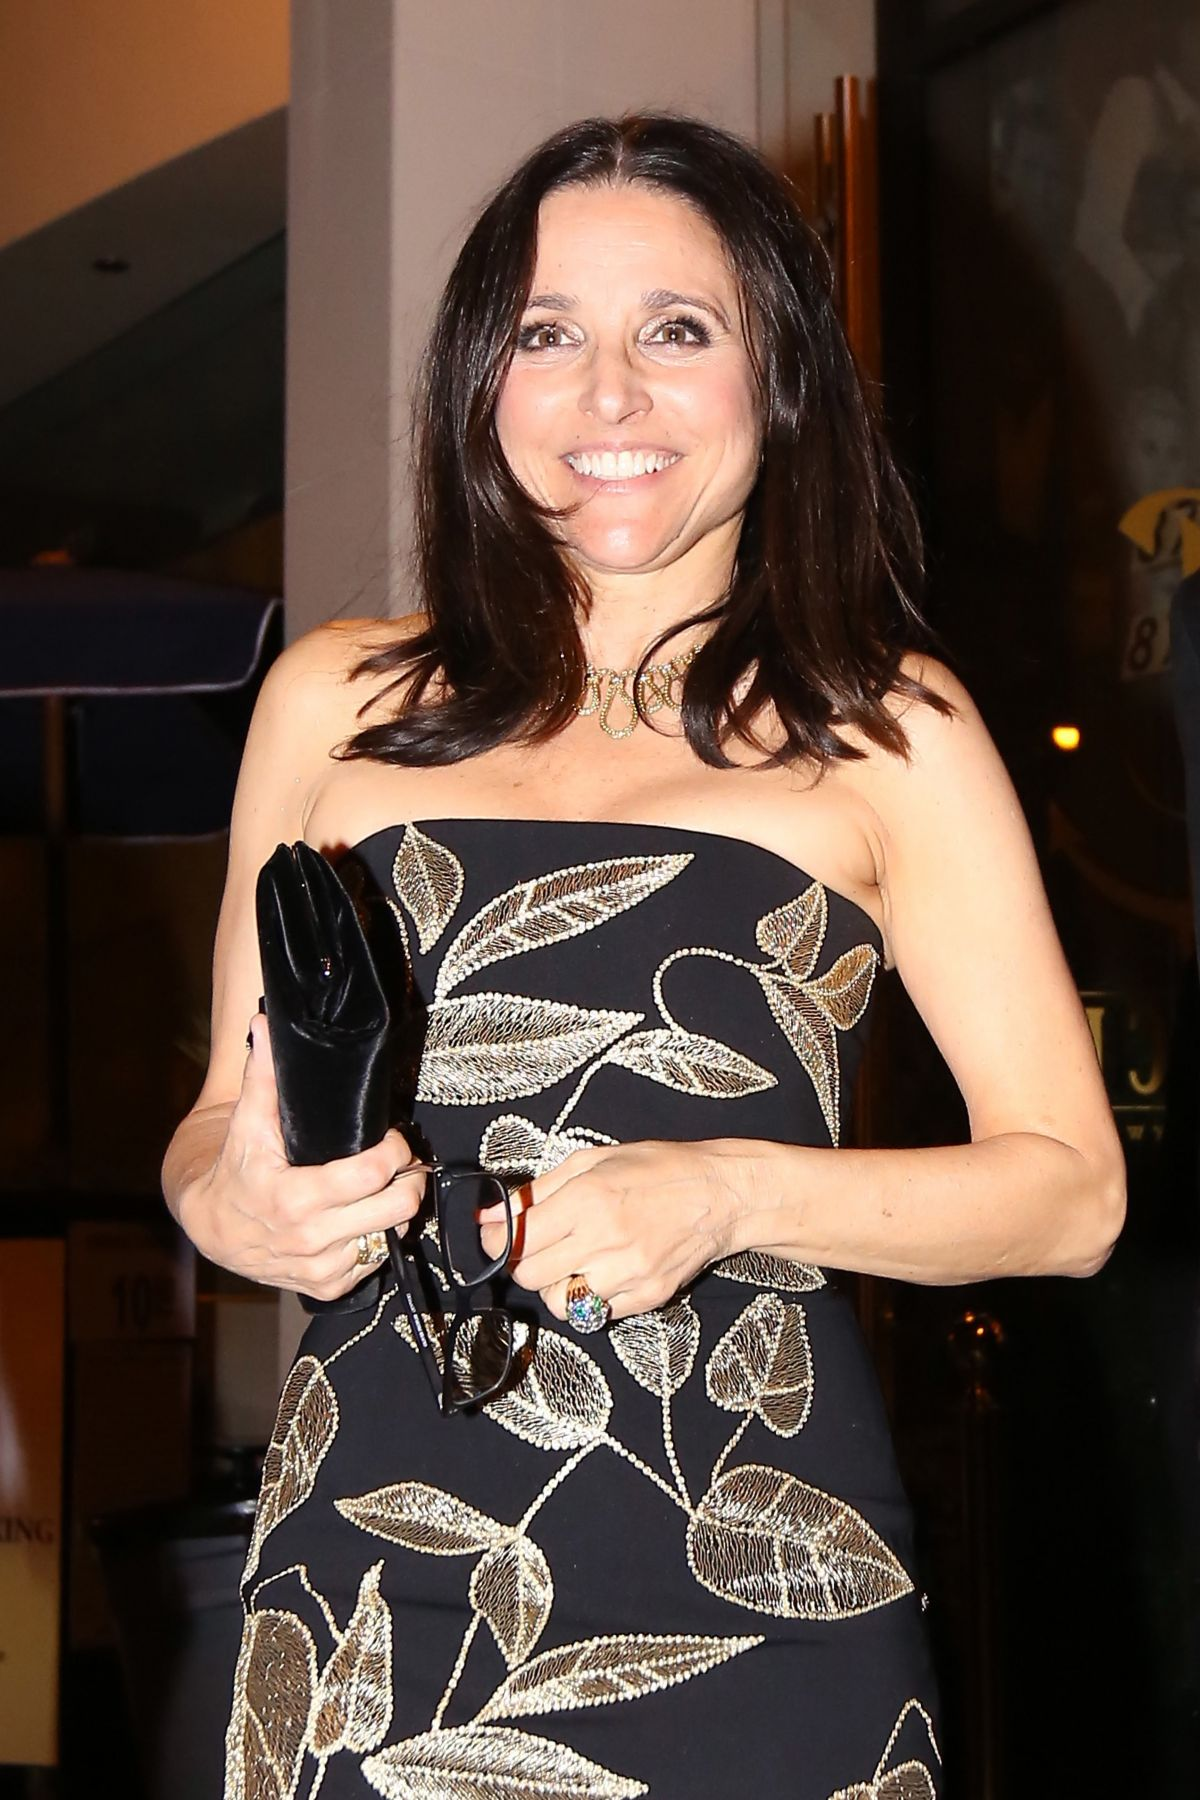 JULIA LOUIS-DREYFUS at Catch LA in West Hollywood 01/29/2017